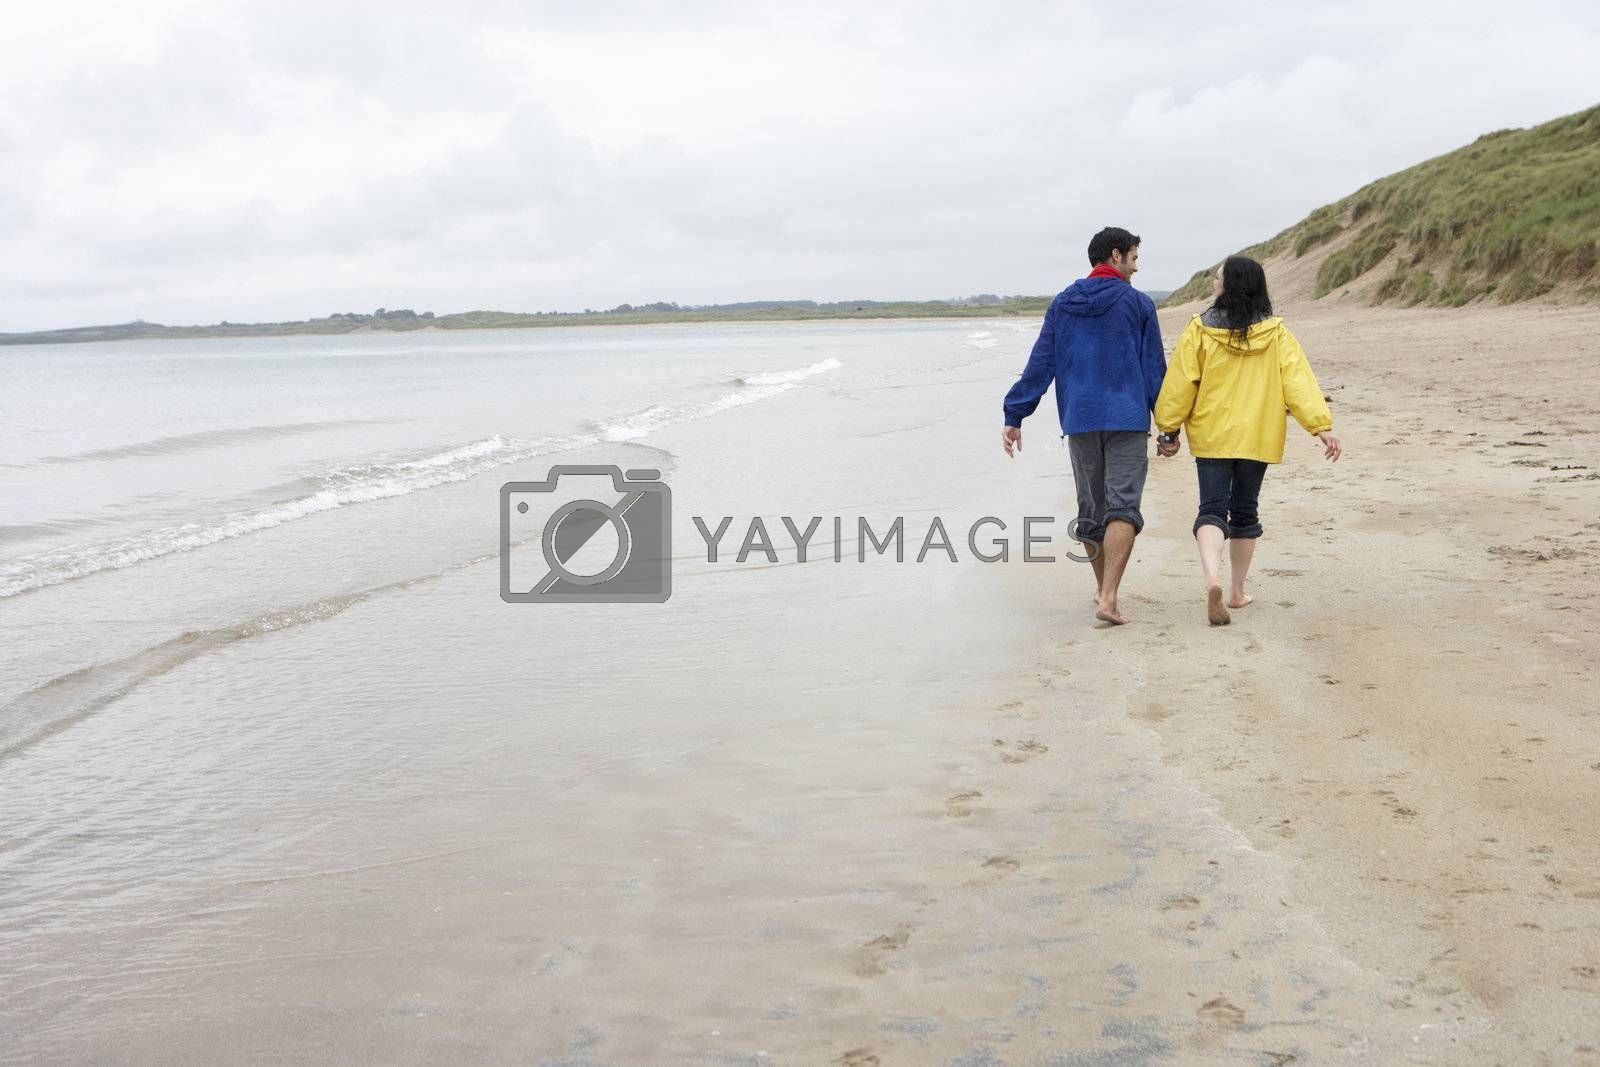 Royalty free image of Couple on beach in love by omg_images